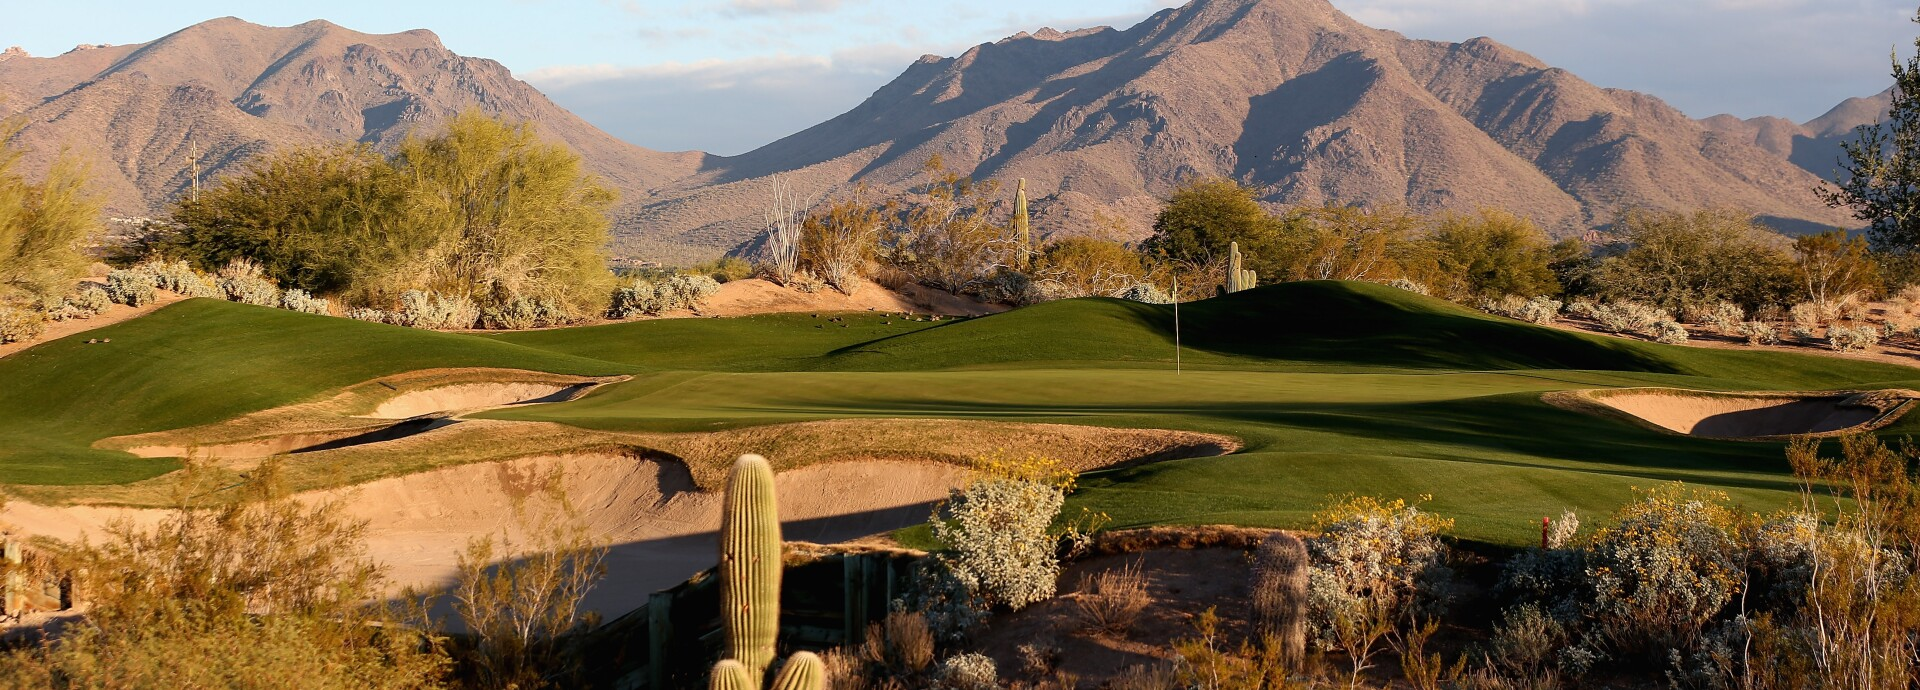 General Views of Arizona Golf Courses